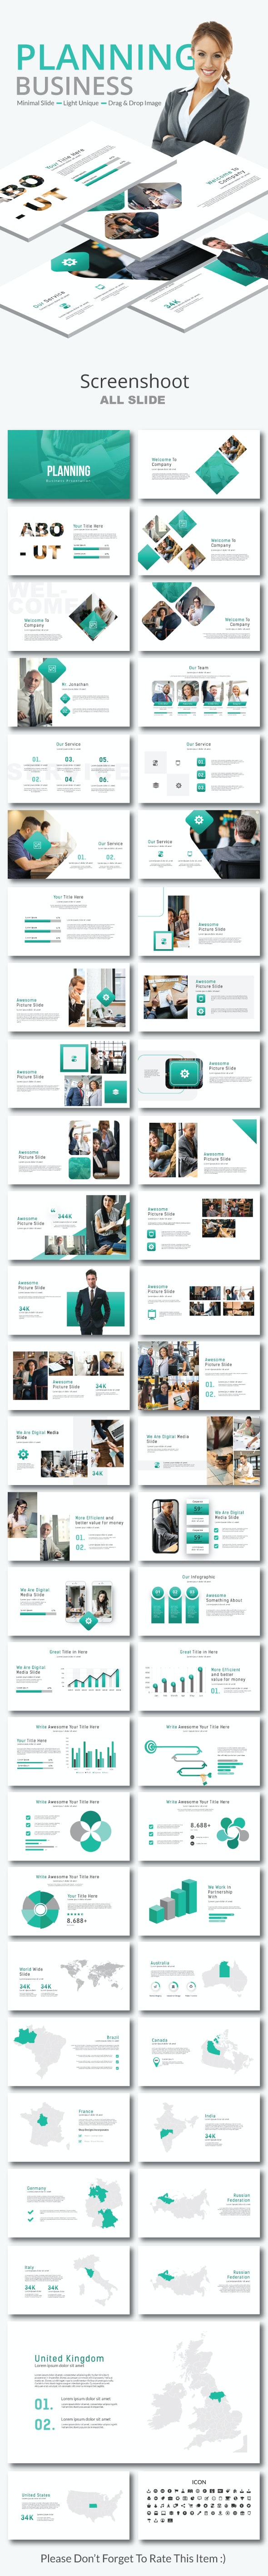 Planning Business Keynote - Business Keynote Templates